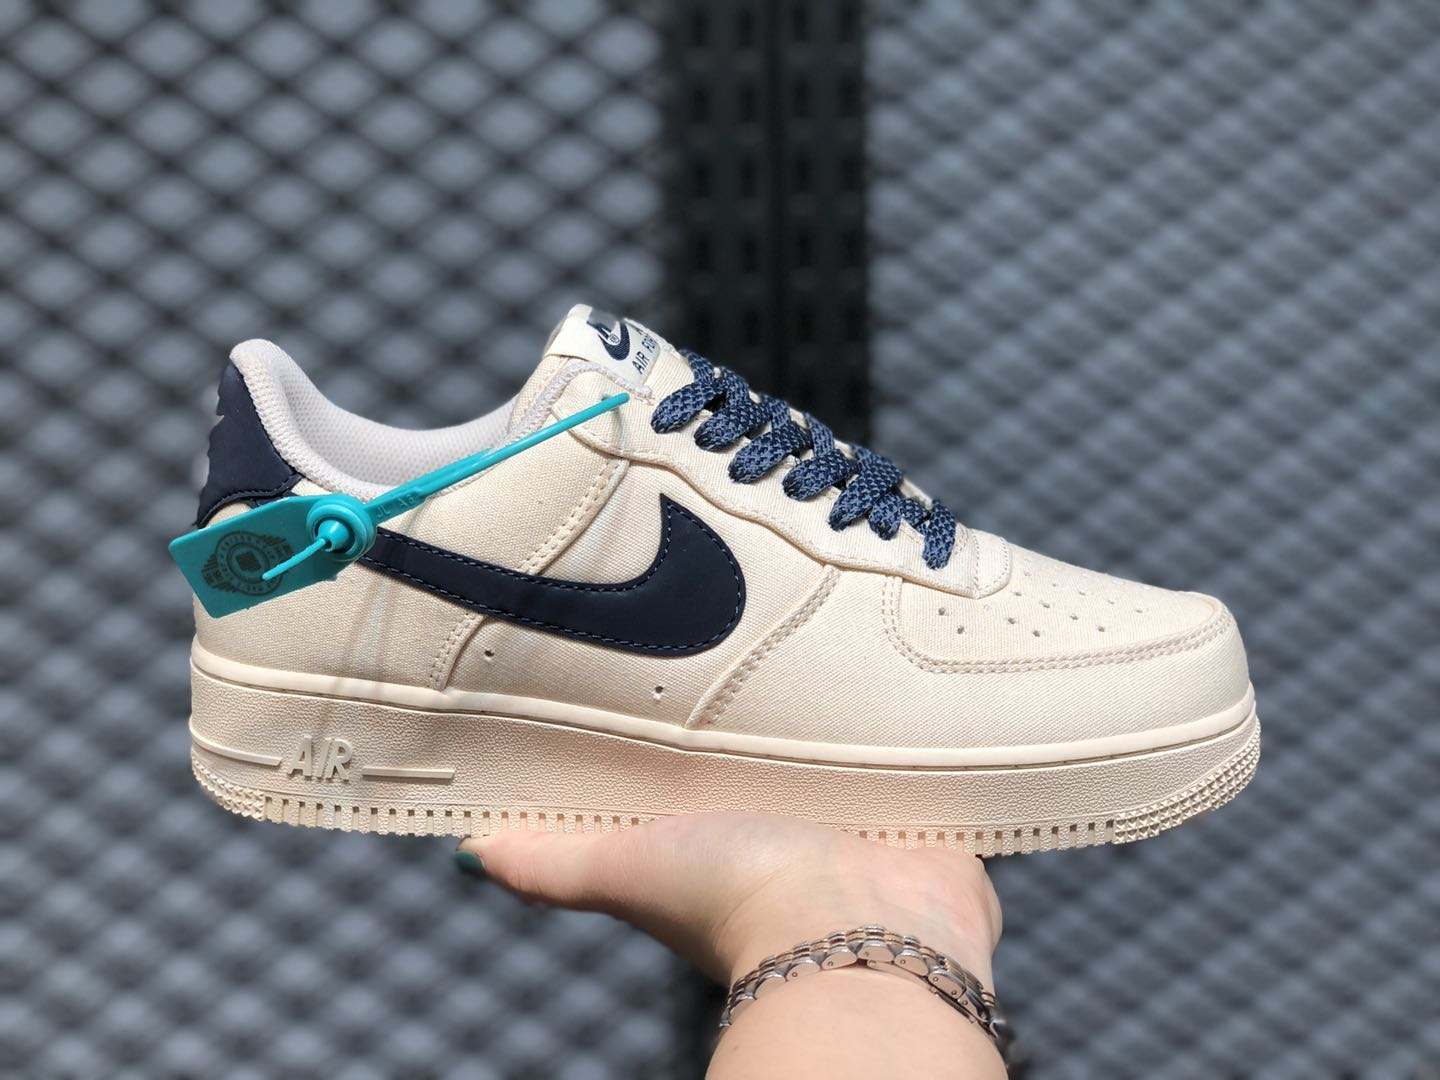 Nike Air Force 1 Low Cloud White/Dark Blue Casual Shoes 315122-109